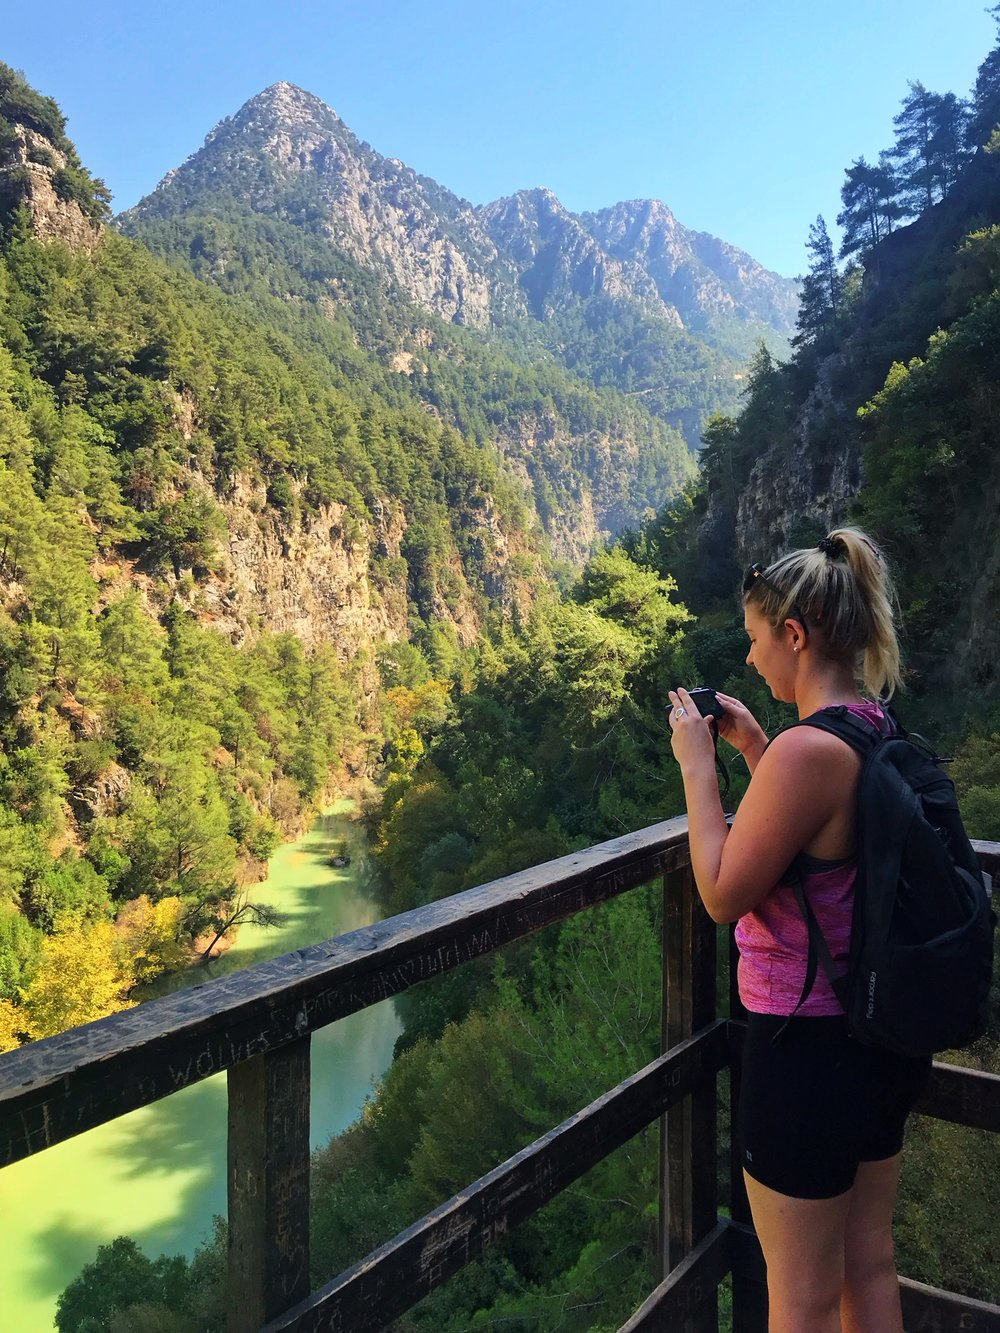 Chouwen Day Tour - October 2018